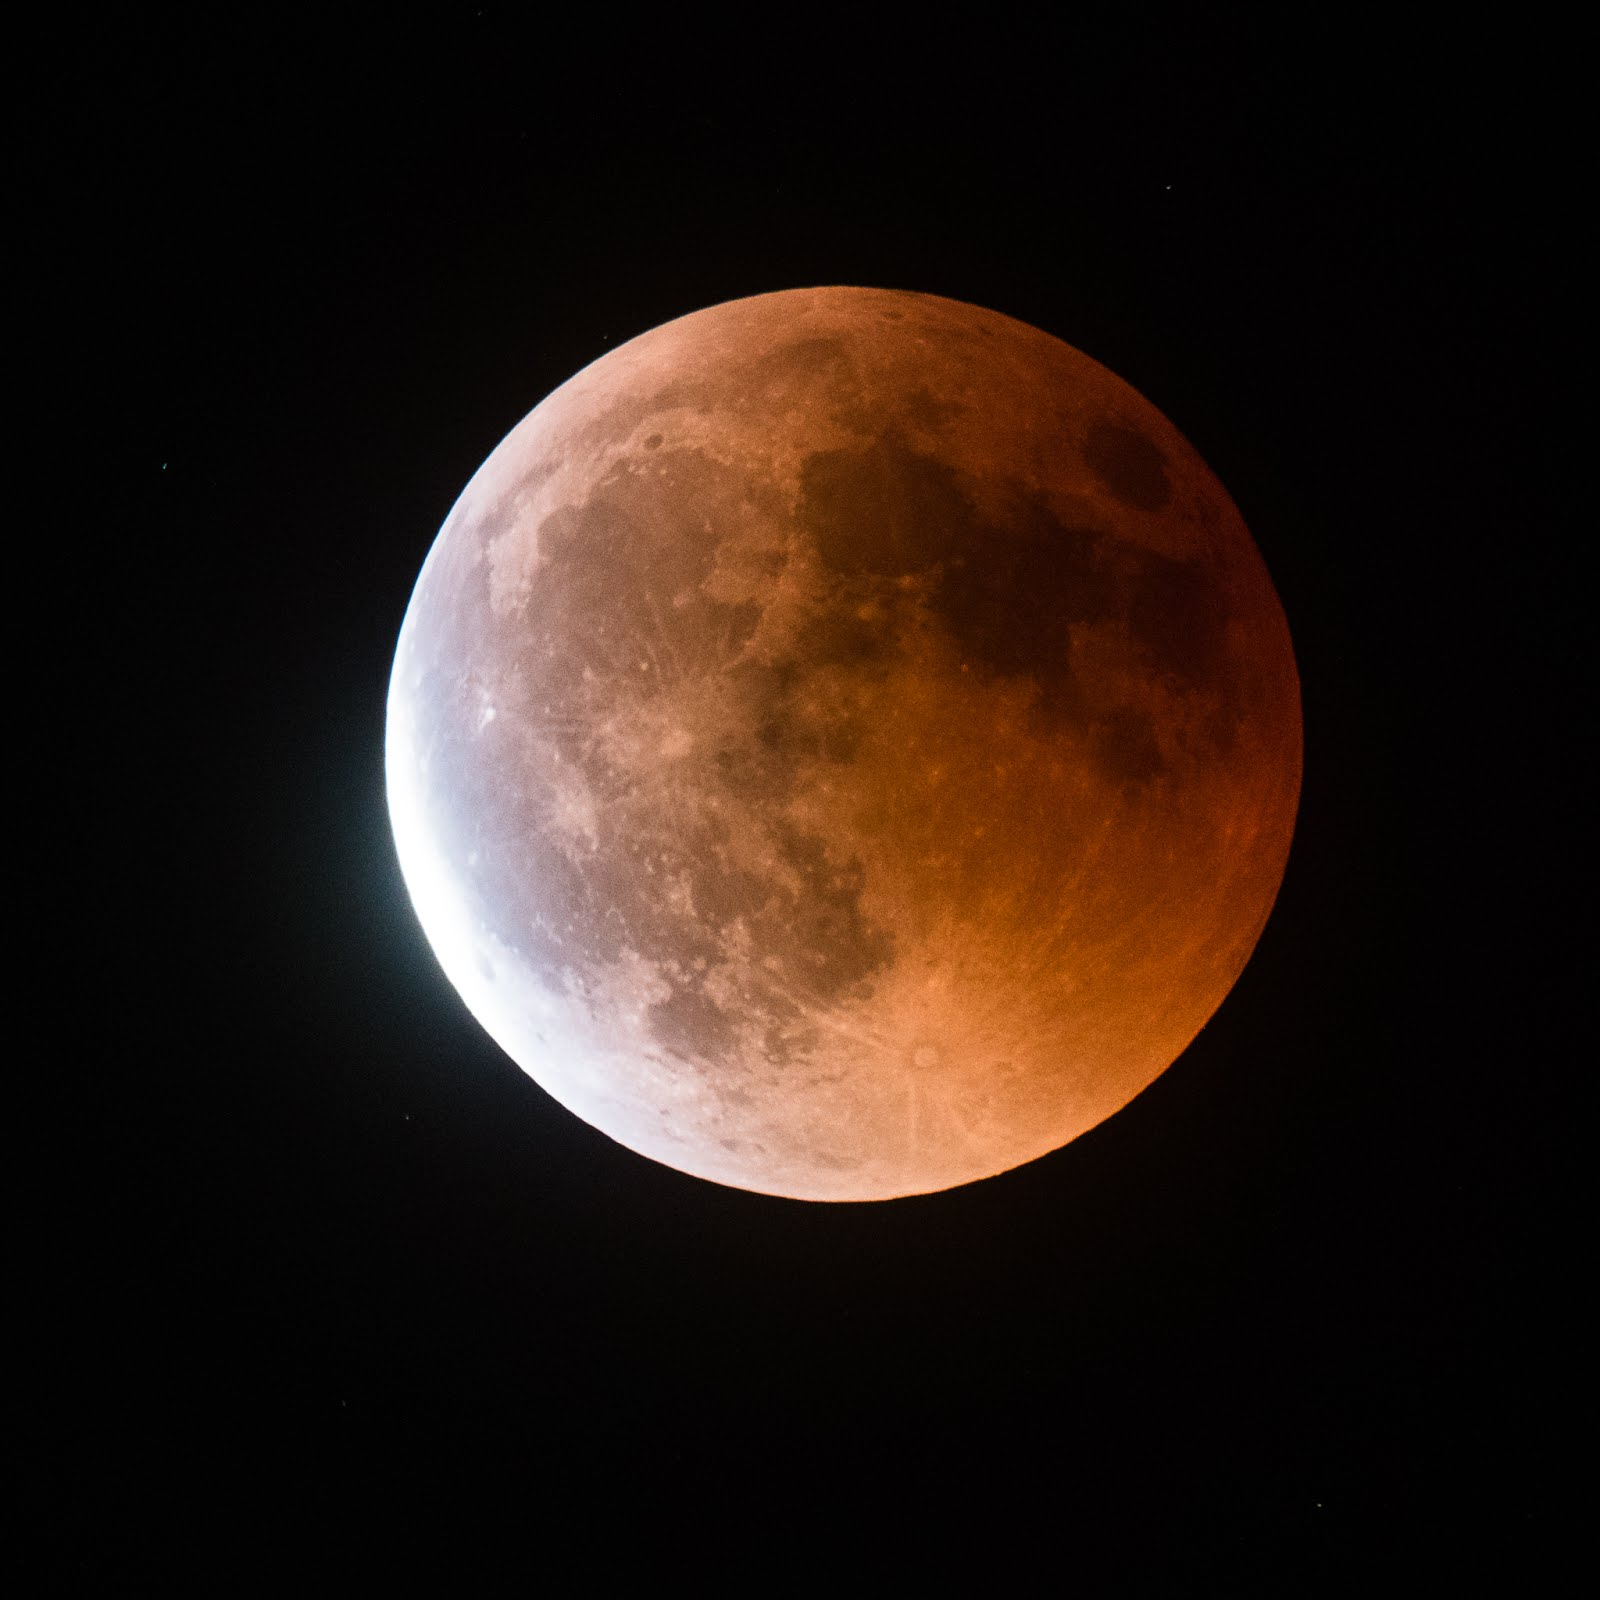 Moon Eclipse Jul 26 2018